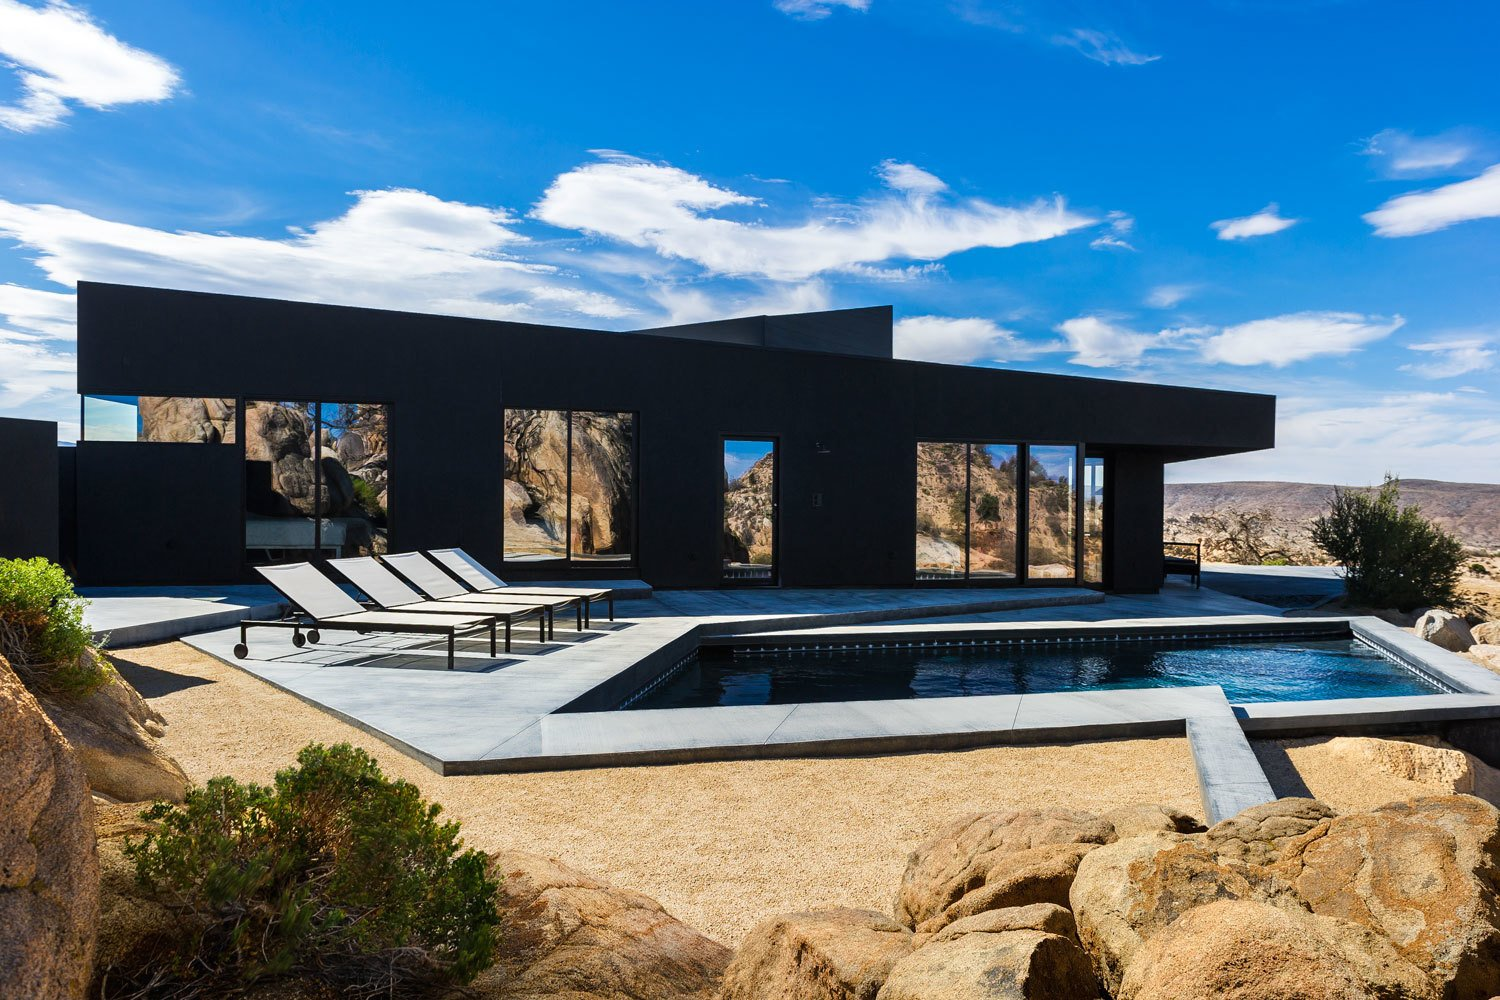 The pool is framed by angular concrete paths reflecting the natural geometry of the site.  A Sculptural Desert Escape Inspired by a Shadow by Caroline Wallis